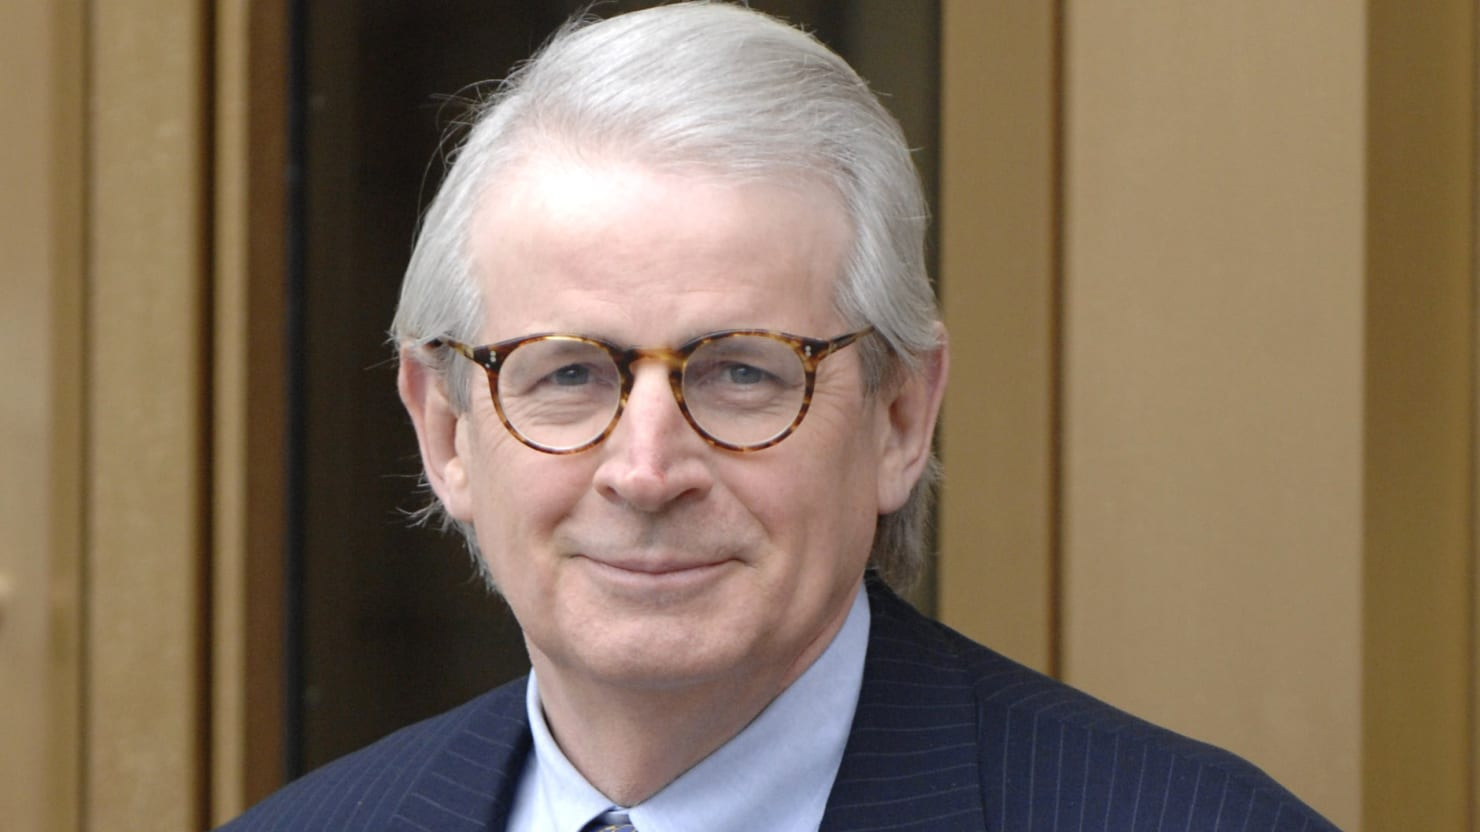 David Stockman On 'The Great Deformation' and Our Economic Doom